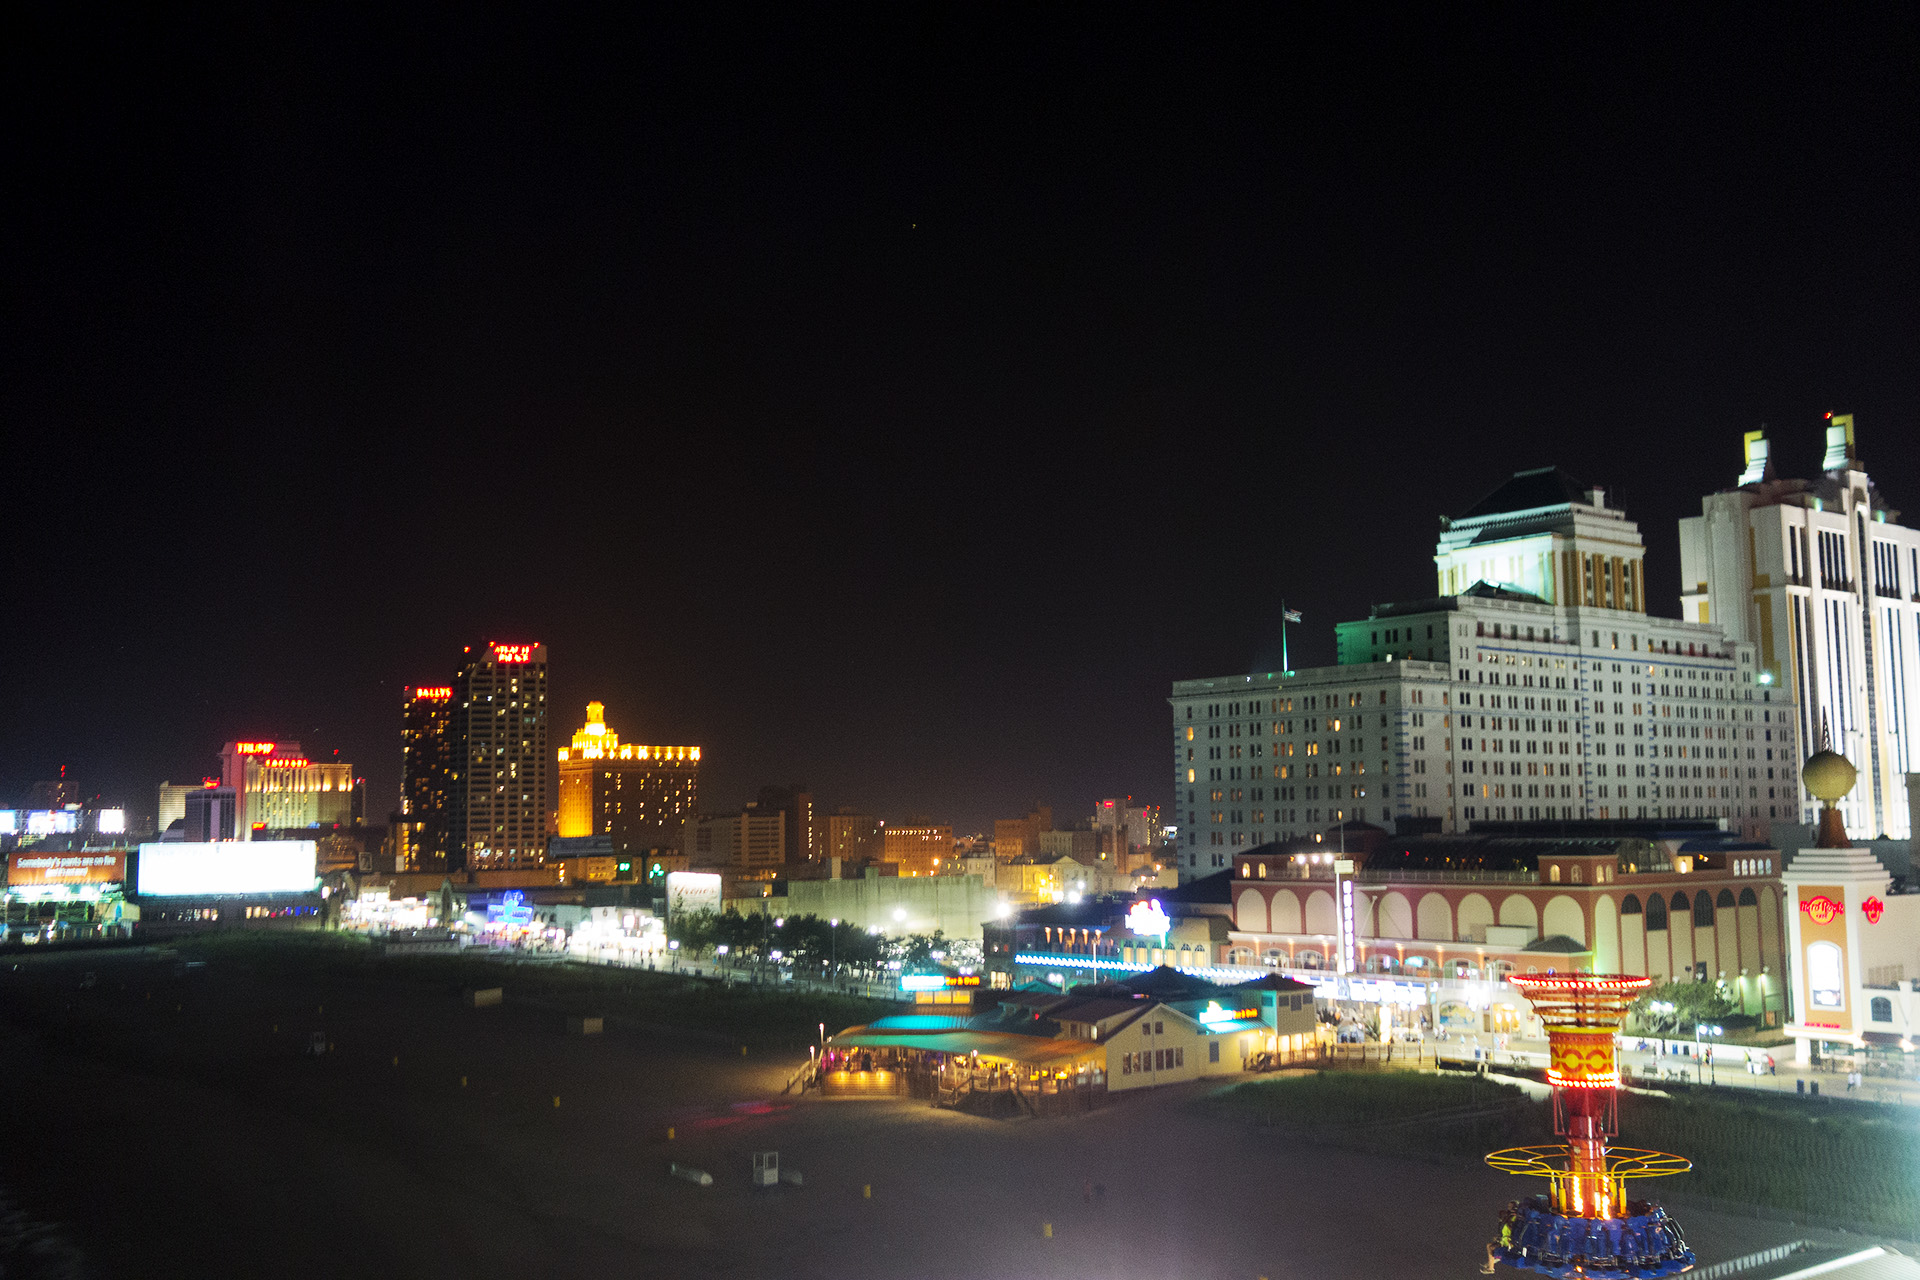 Atlantic City by night.